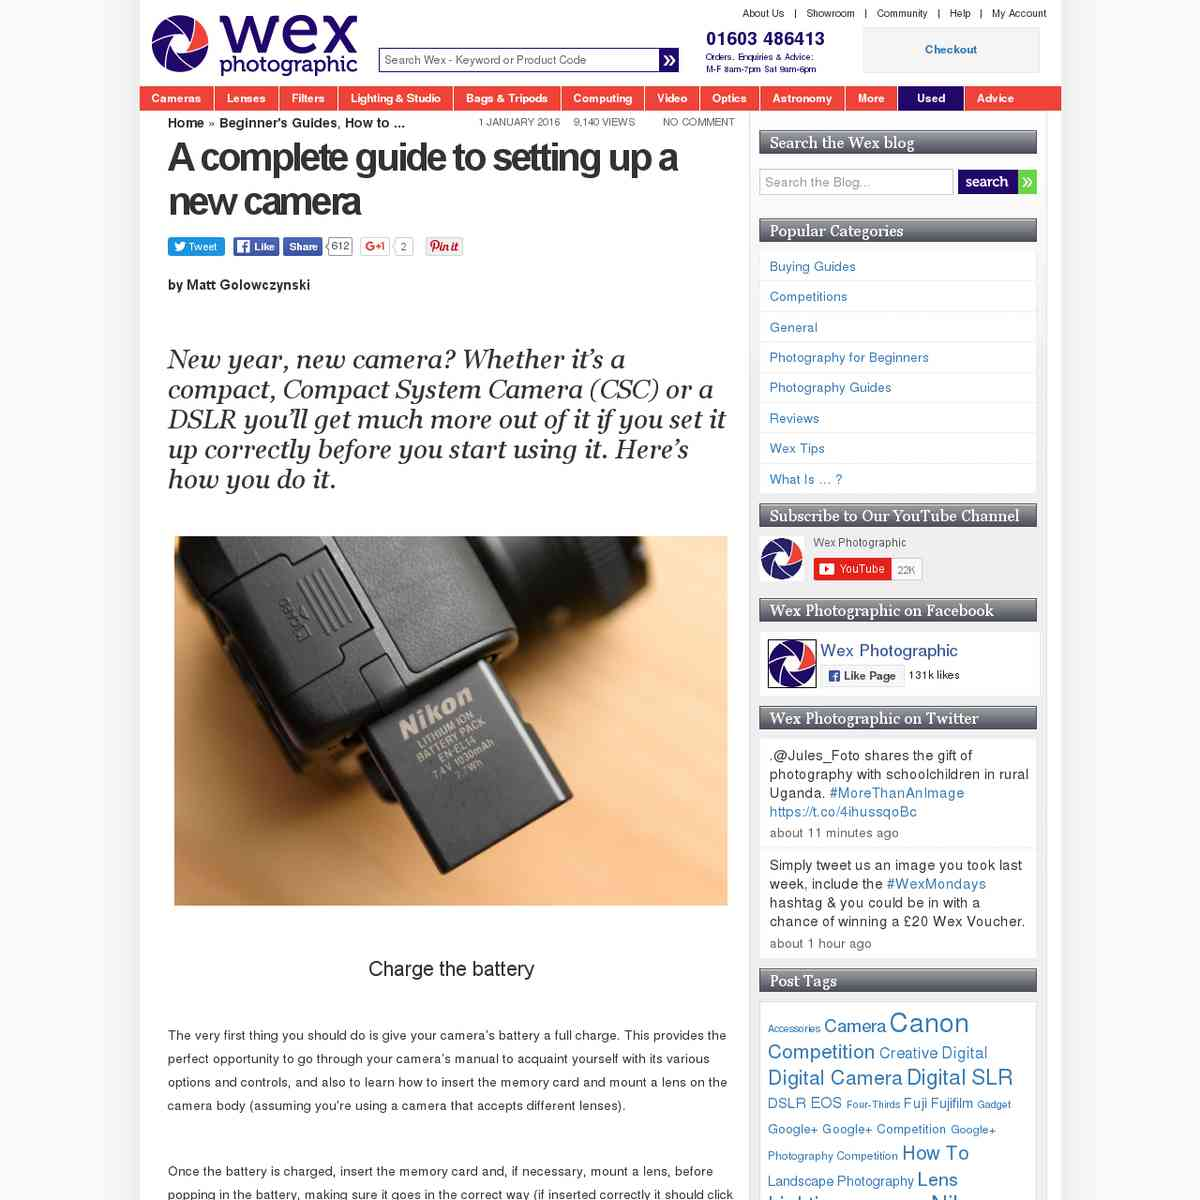 The complete guide to setting up your new camera   Wex Photographic